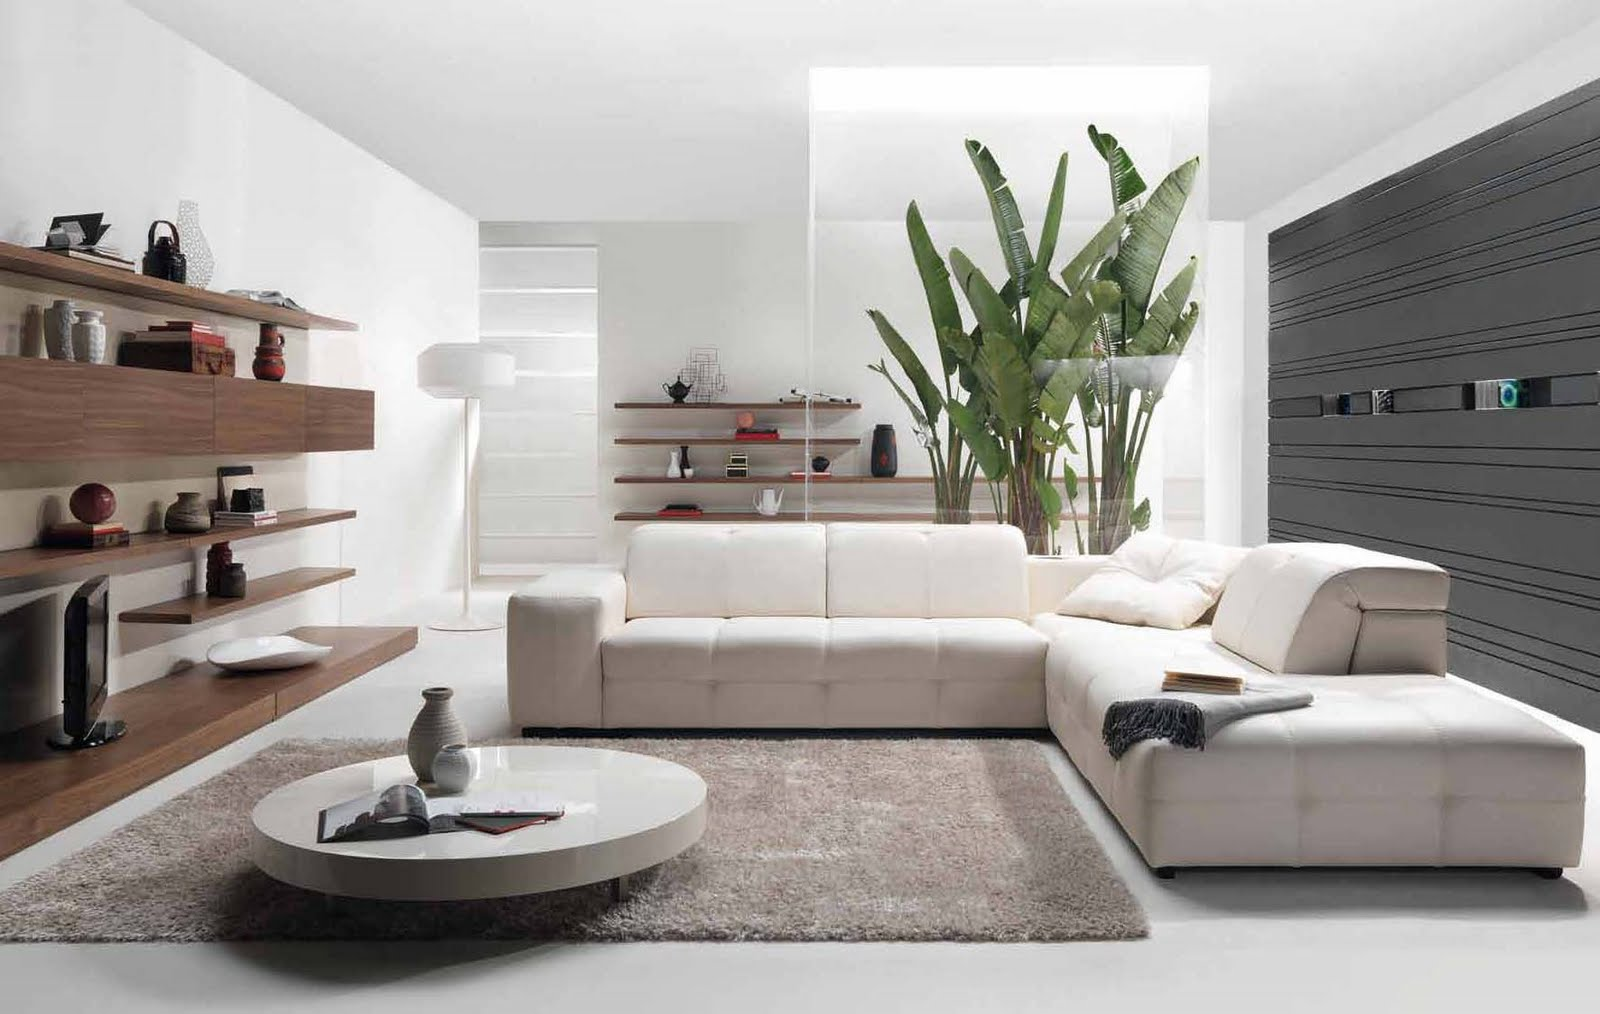 Future house design modern living room interior design for Contemporary room design